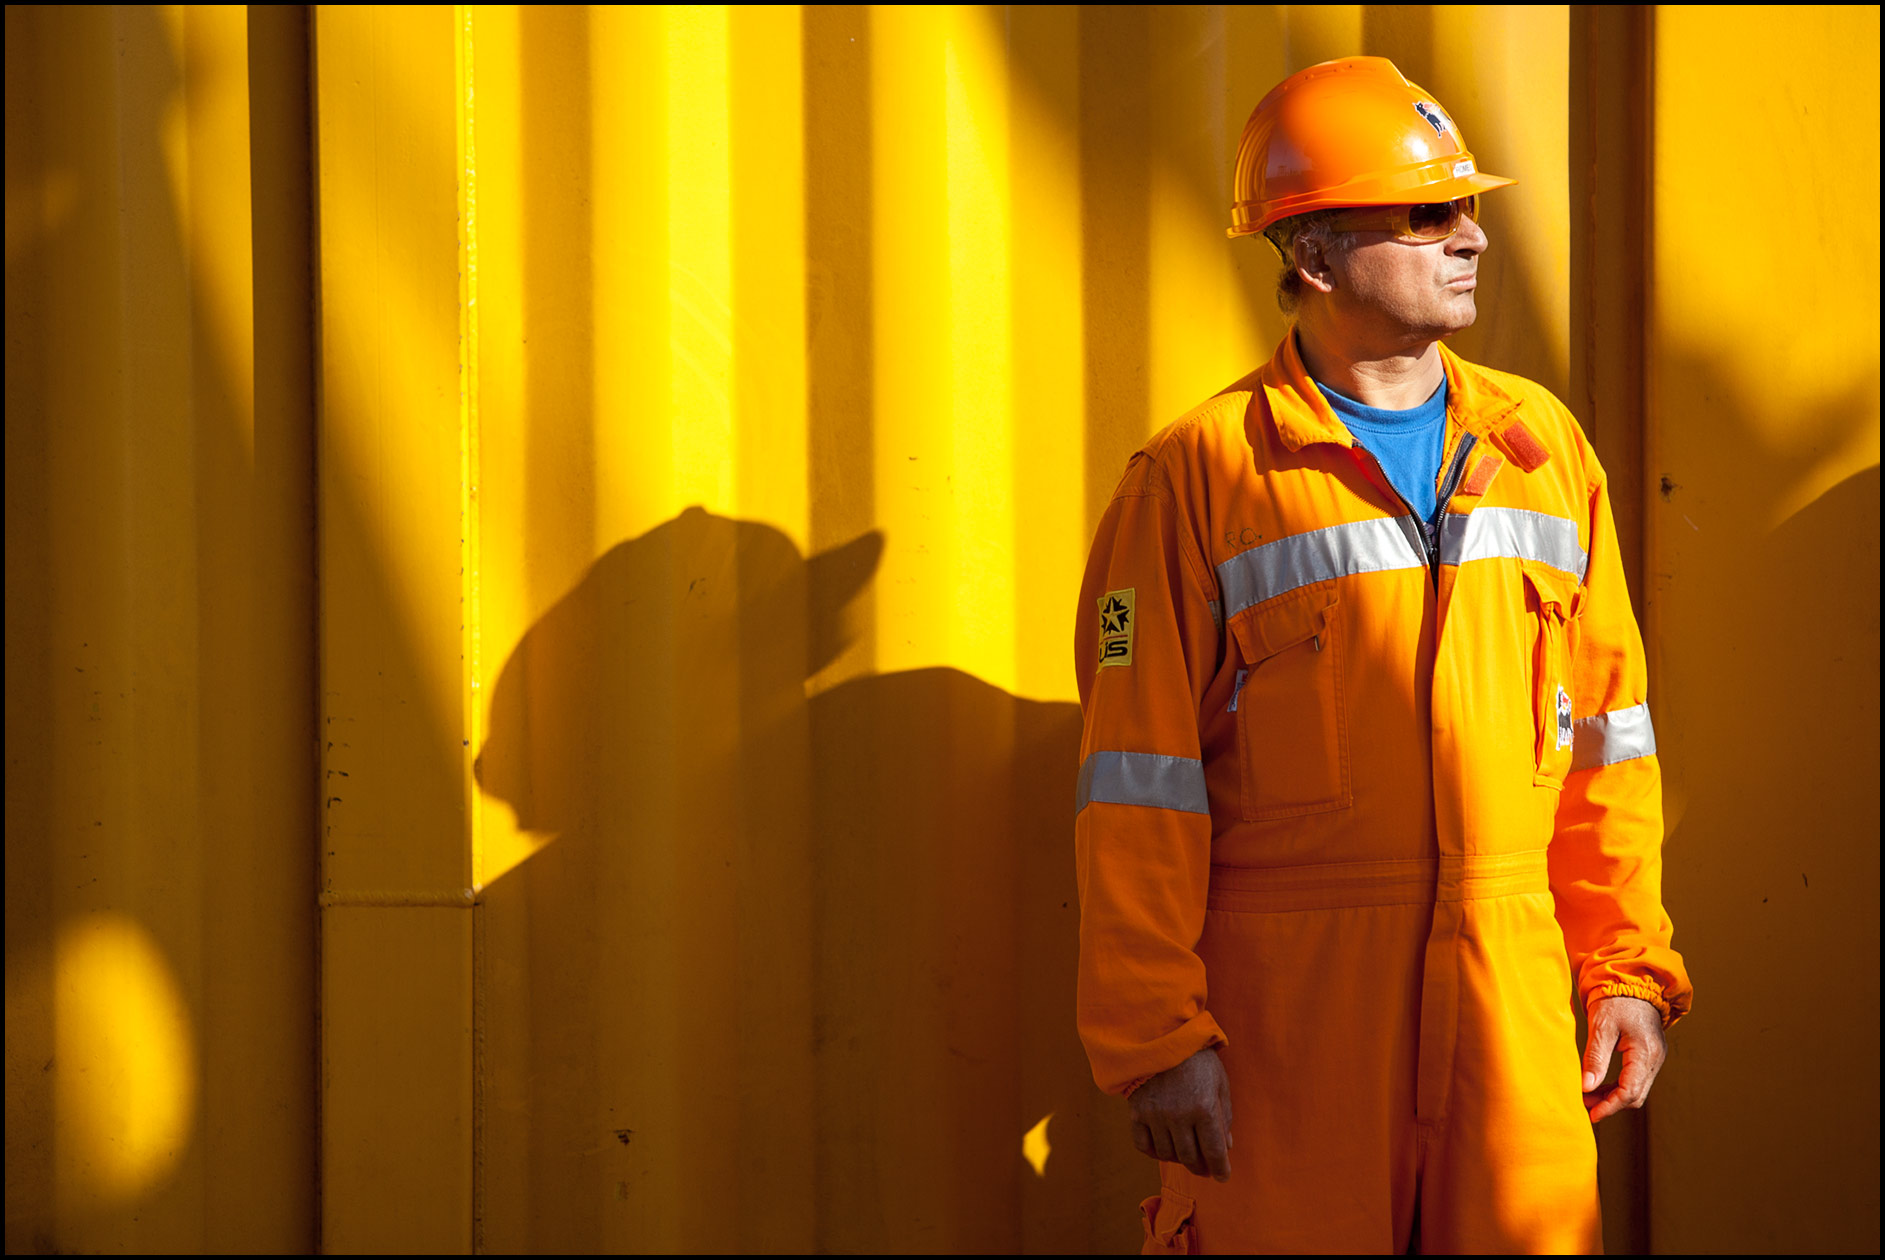 A deck worker wearing orange safety gear (PPE) stands in front of an orange wall on a deepwater construction vessel.